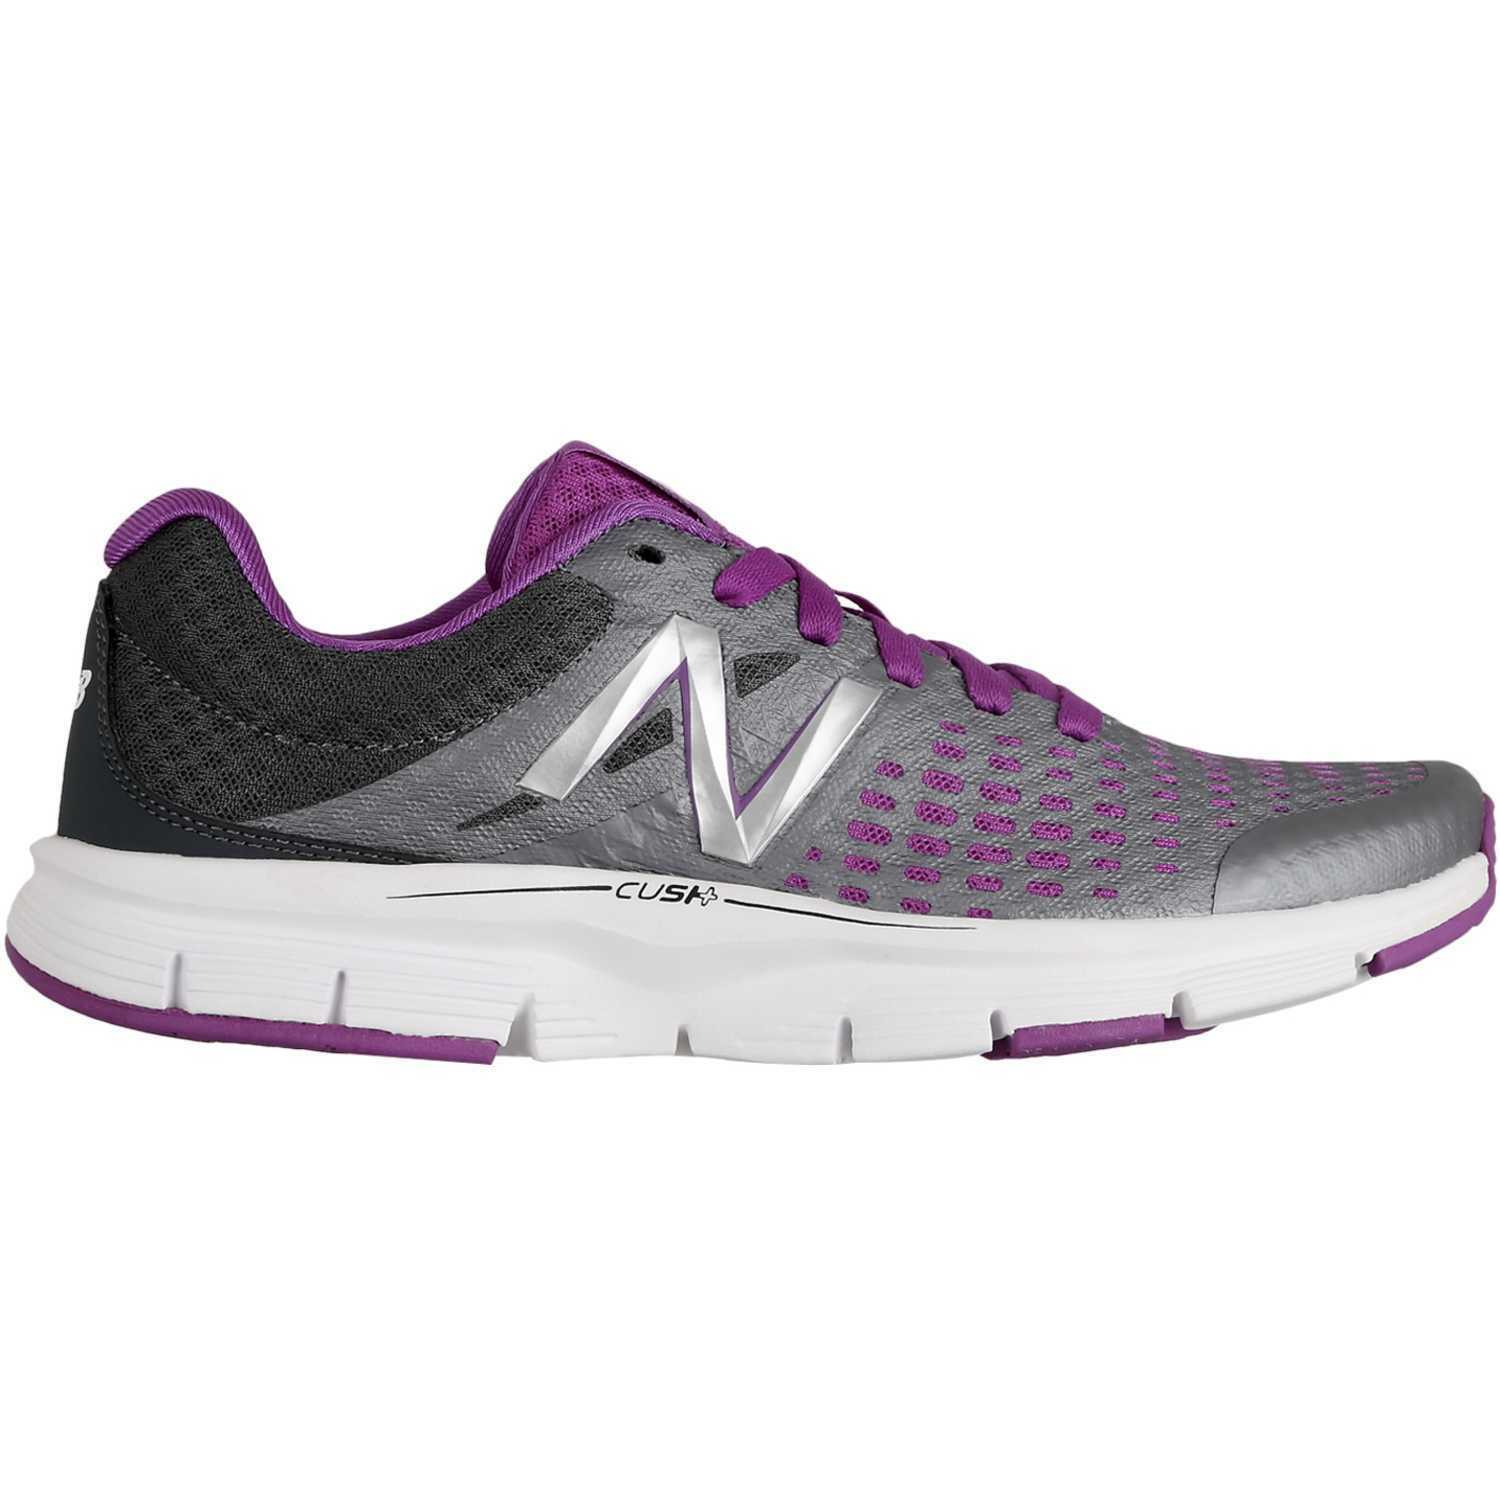 New Balance Women's Running Course shoes NEW AUTHENTIC Grey Purple White W775GP1